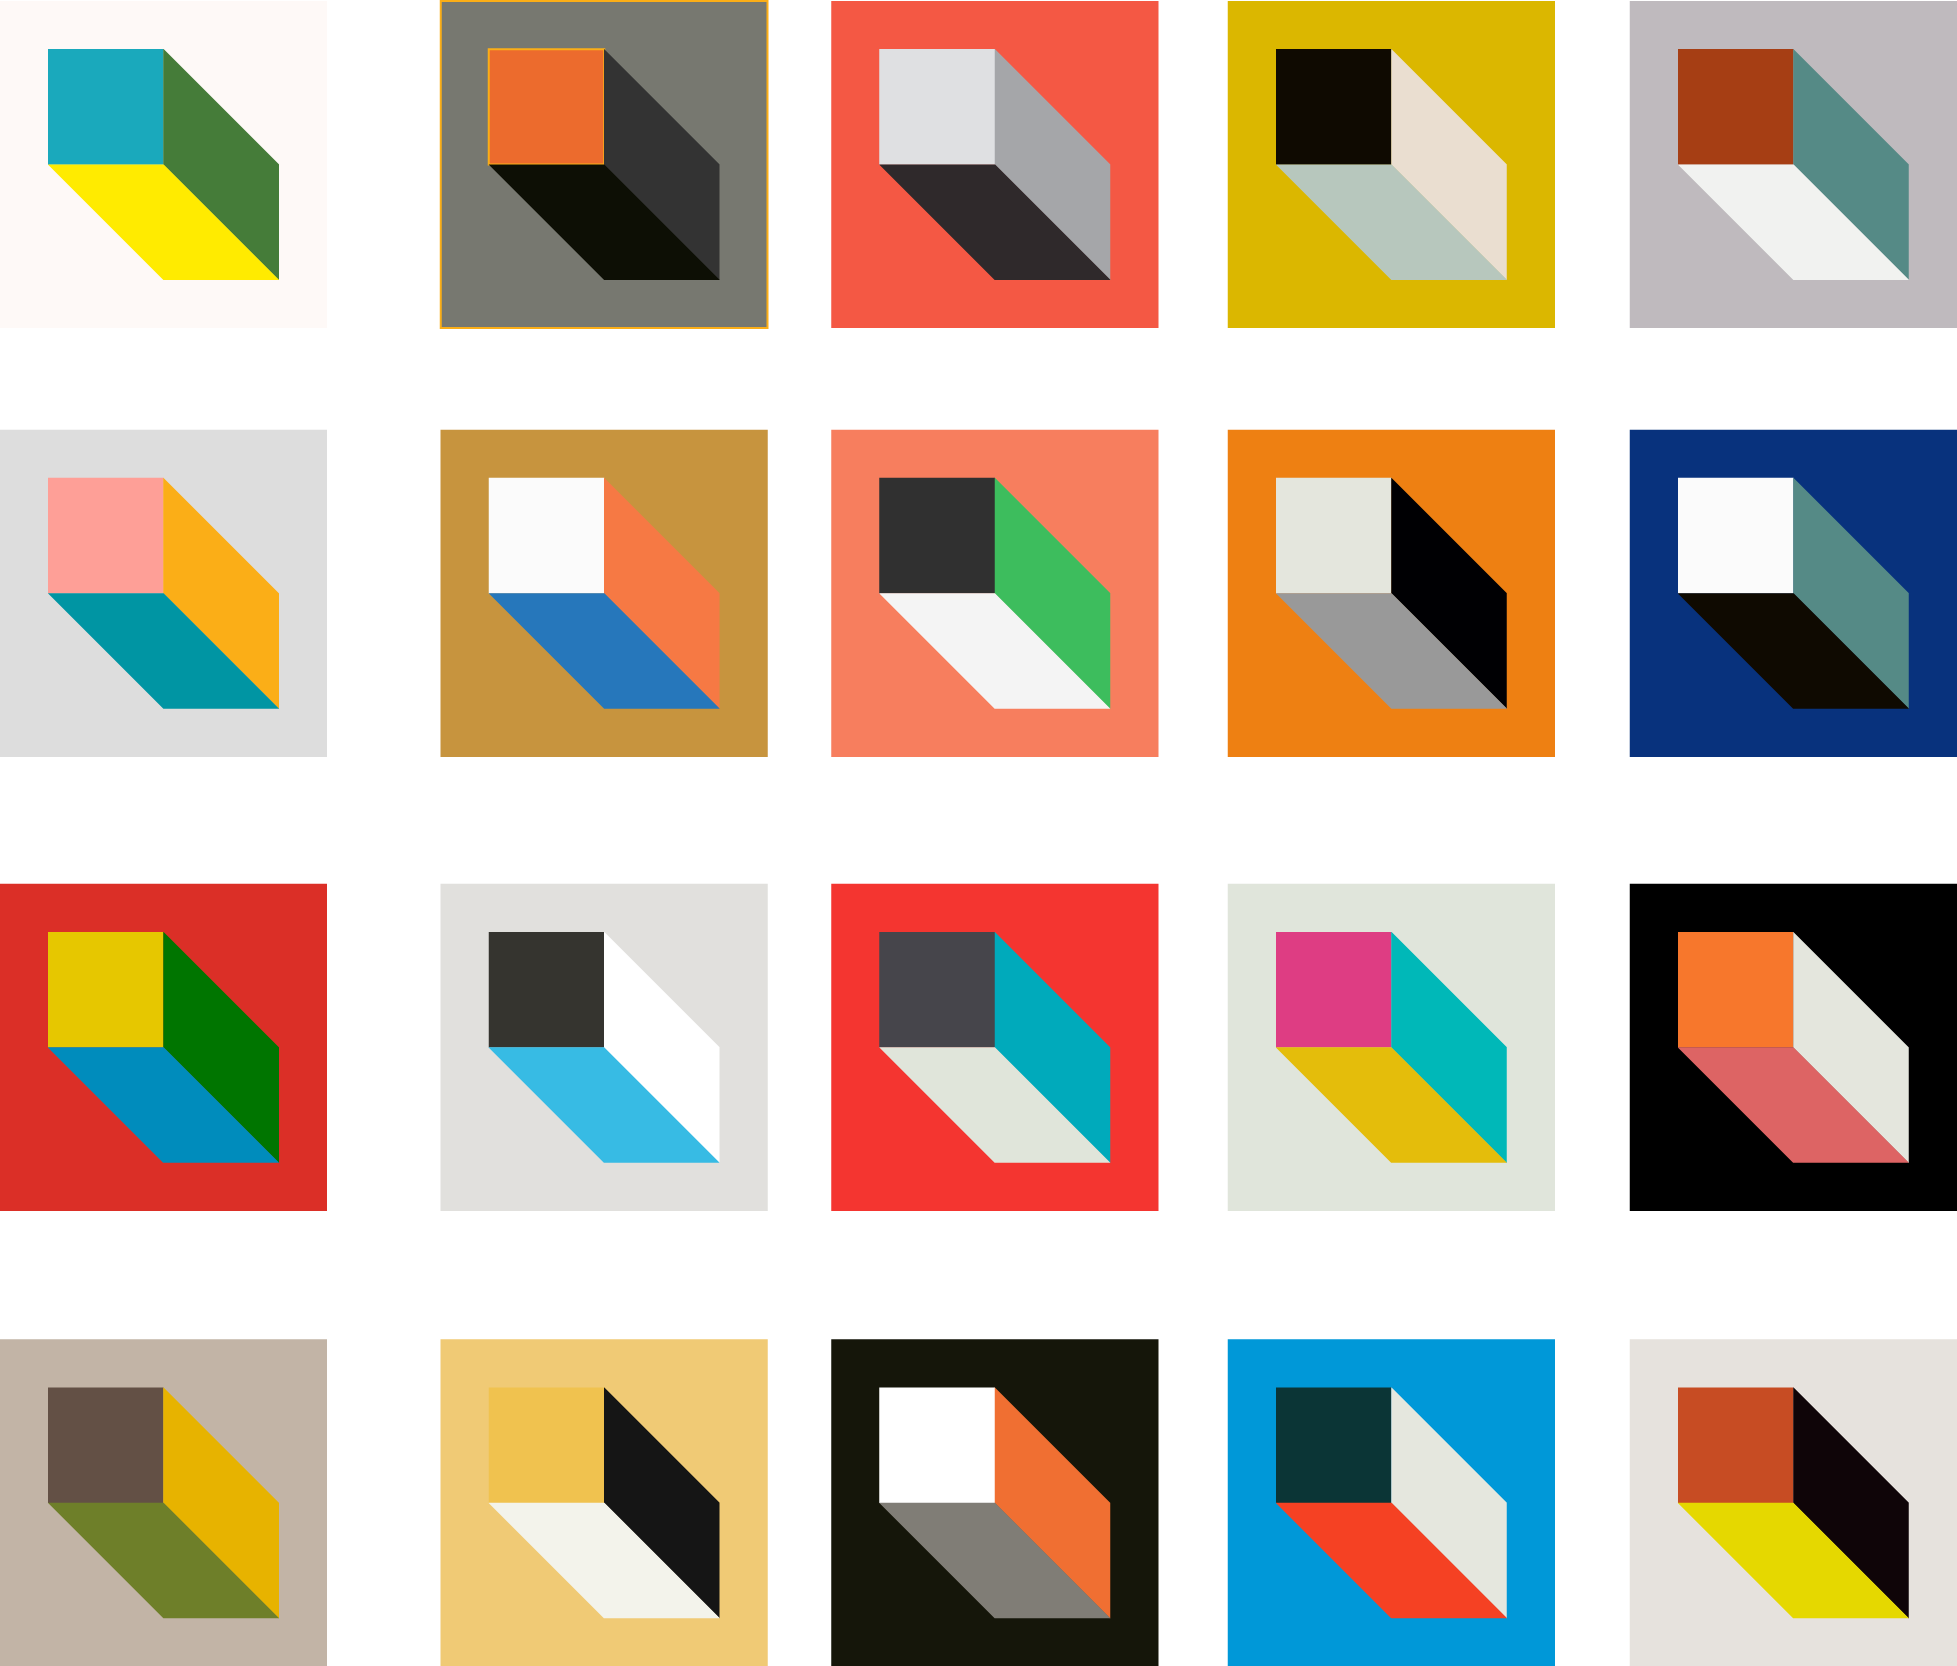 Game maker color picker - Swiss Style Color Picker Click To Copy A Color To Clipboard